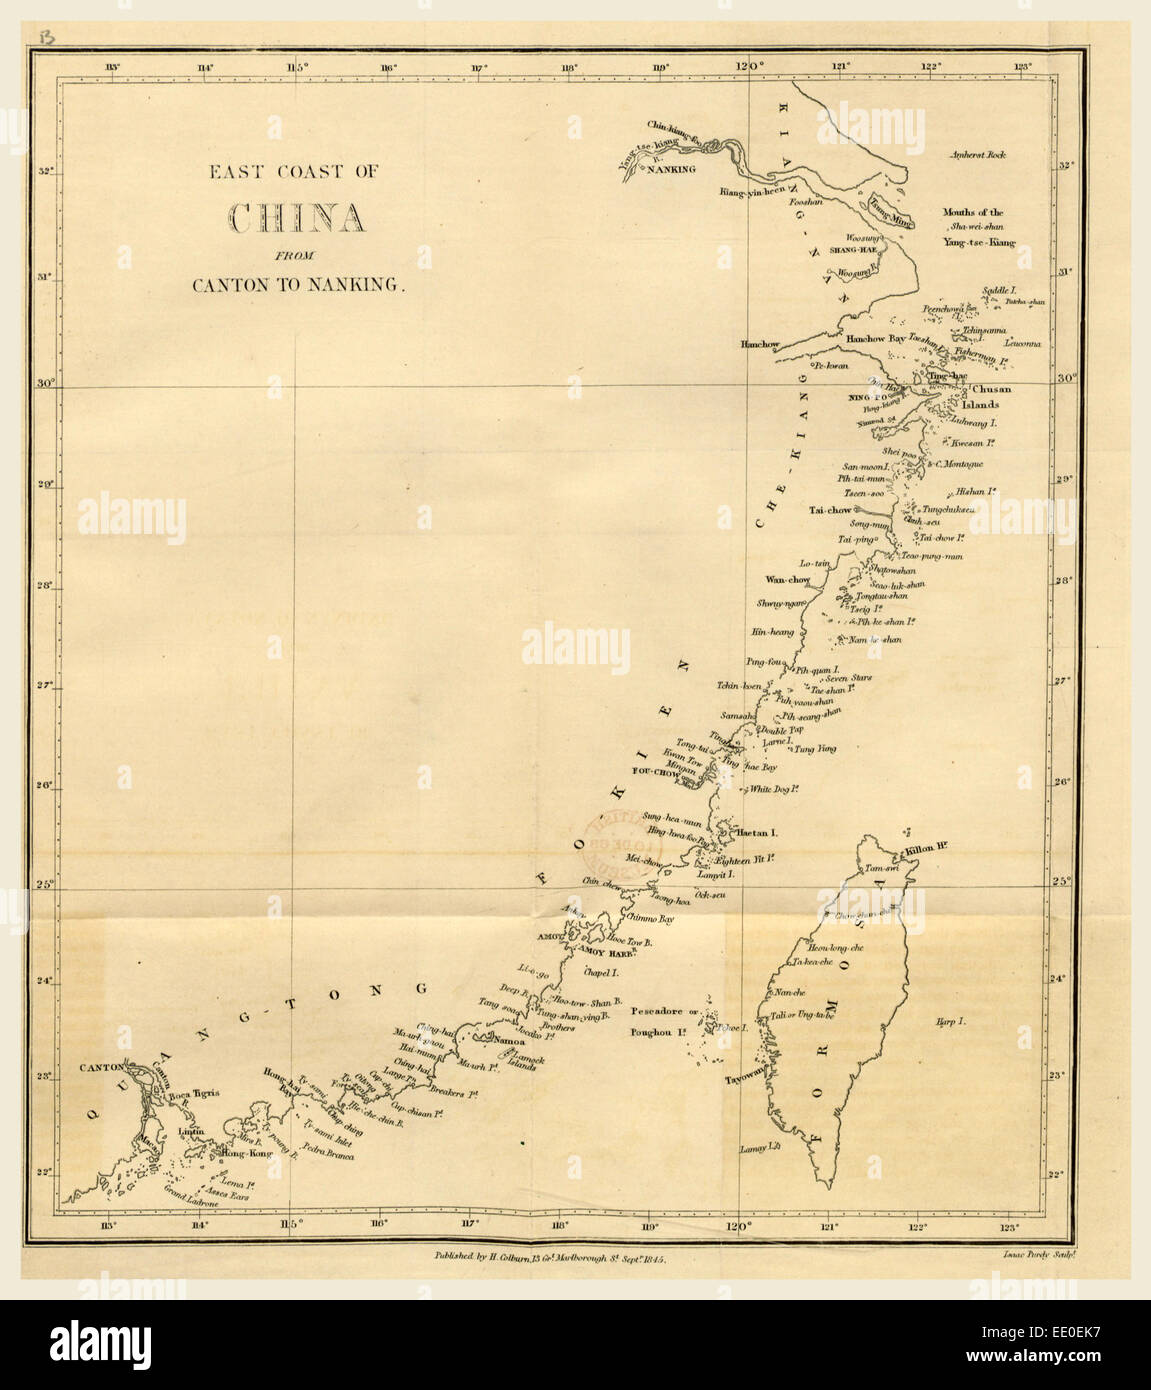 Topographical Map of the East coast of China from Canton to Nanking